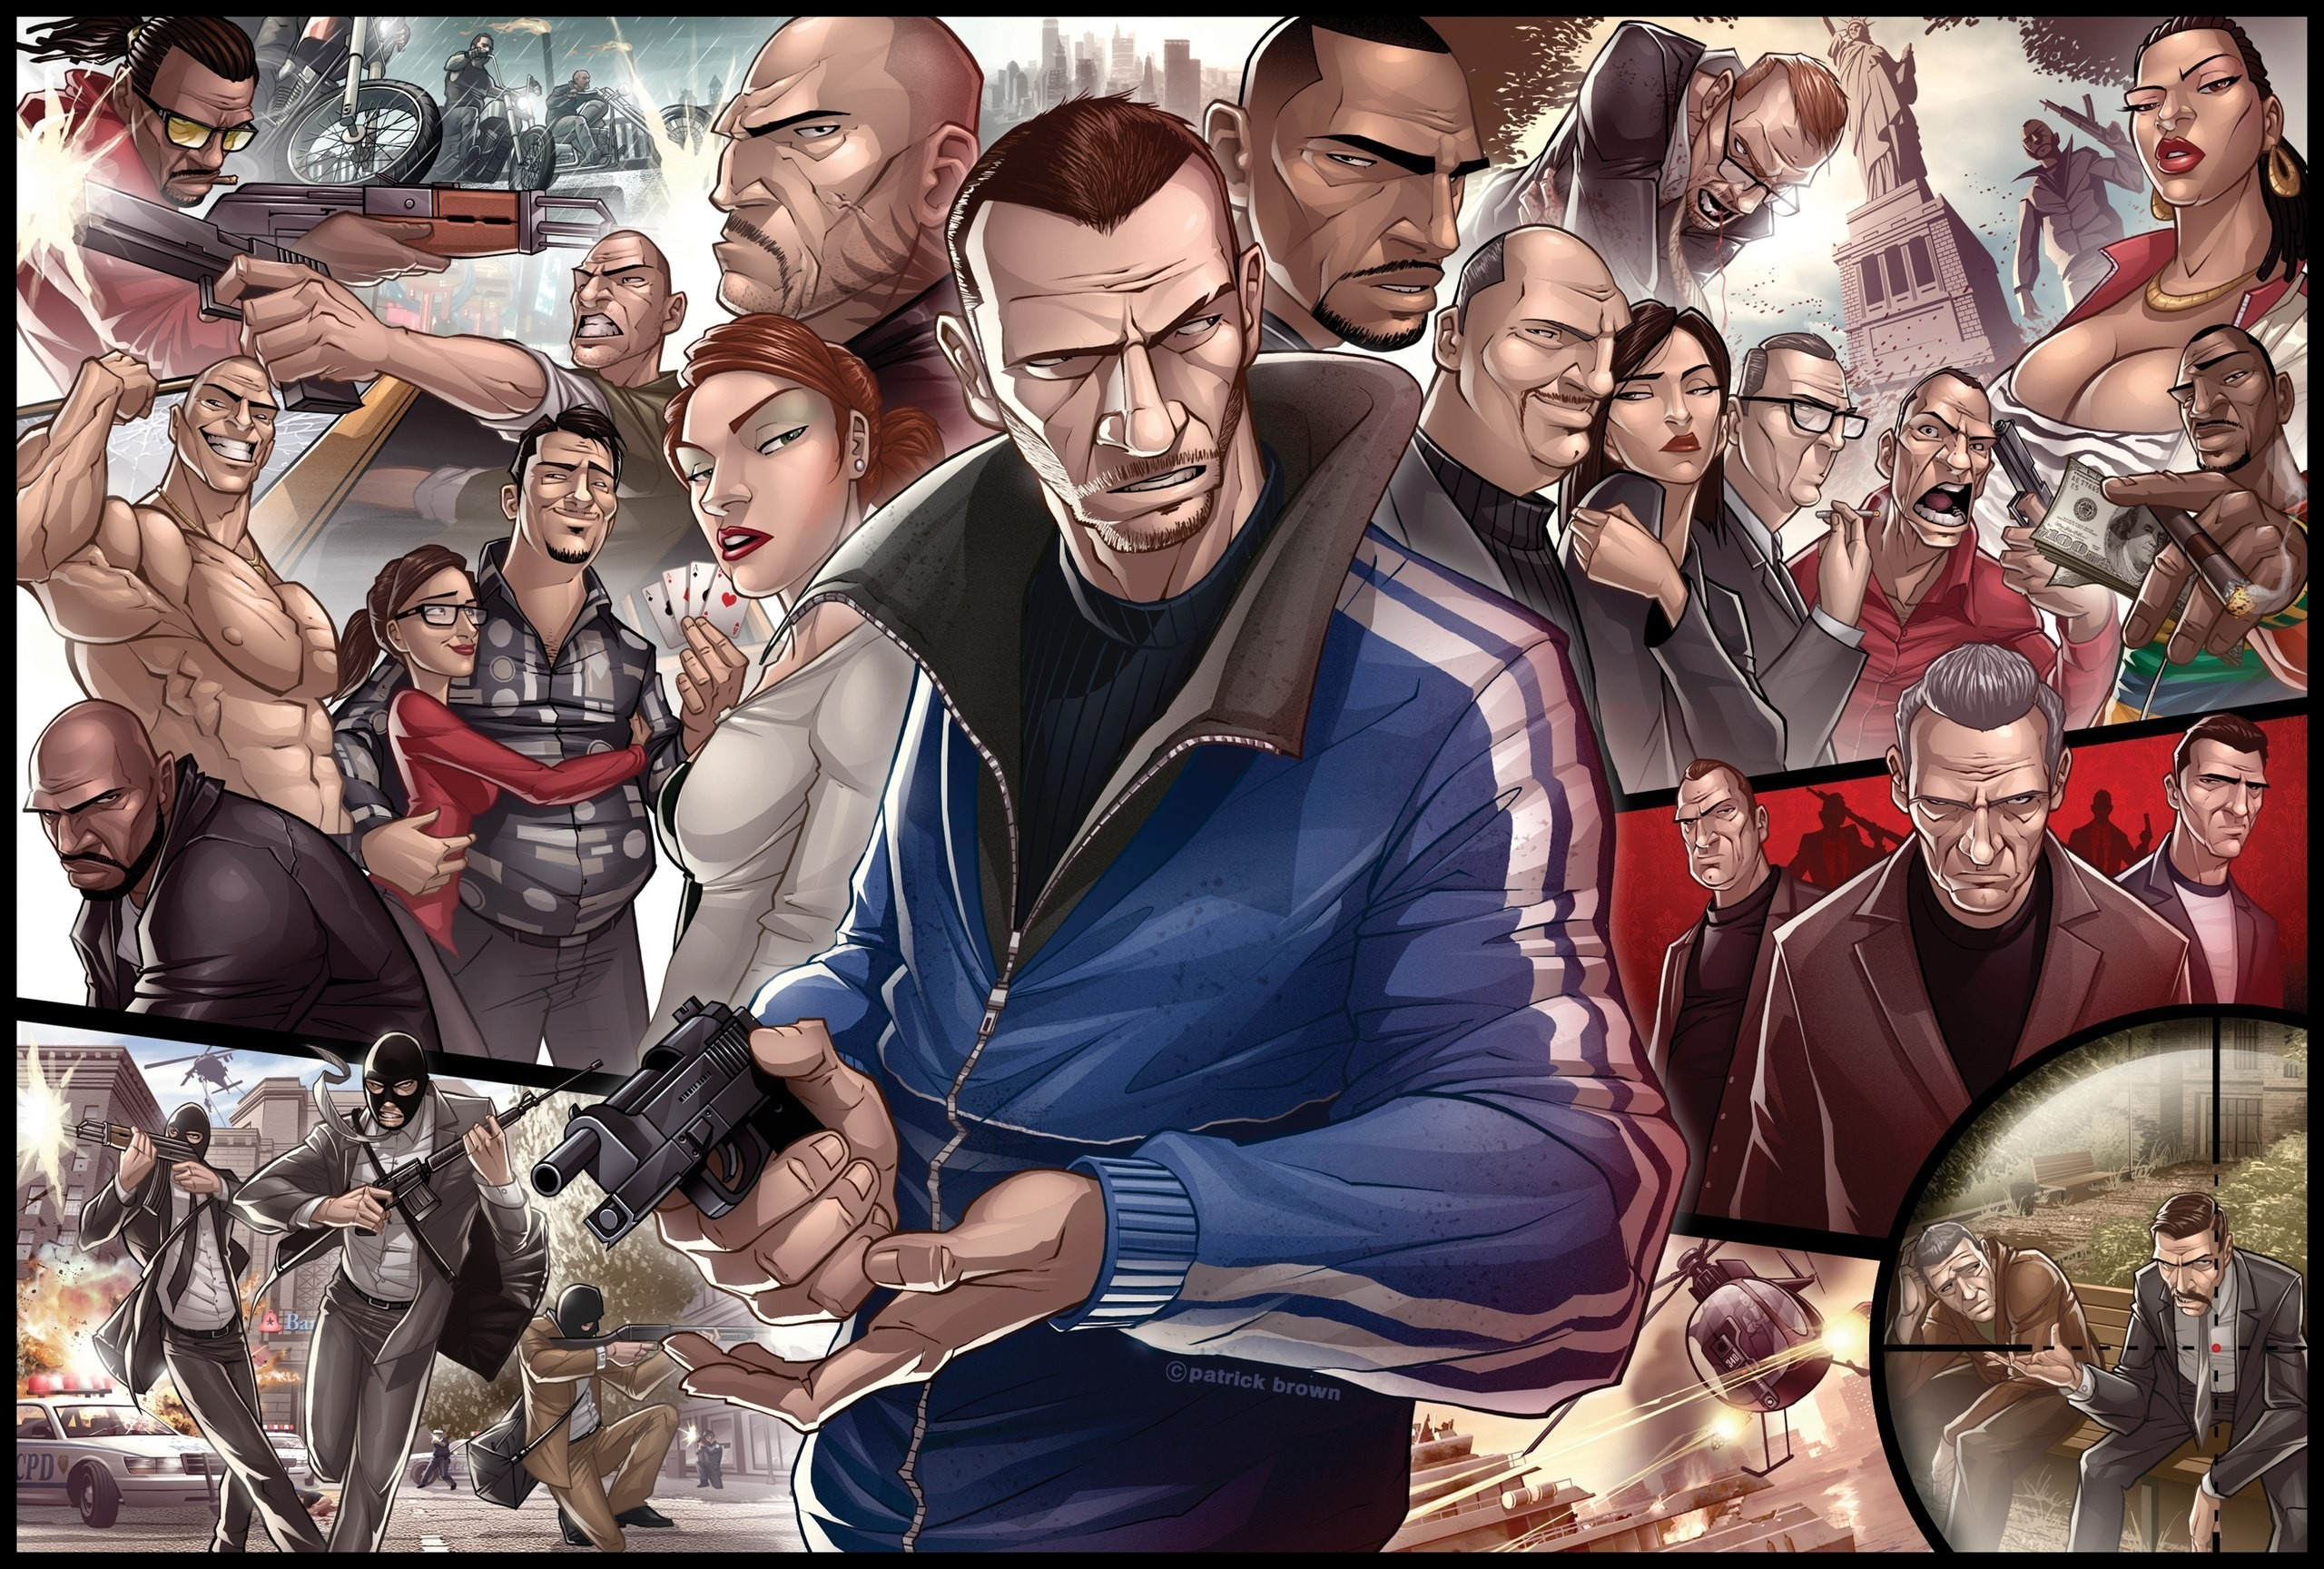 Res: 2560x1728, Grand Theft Auto, Niko Bellic, Artwork Wallpapers HD / Desktop and Mobile  Backgrounds